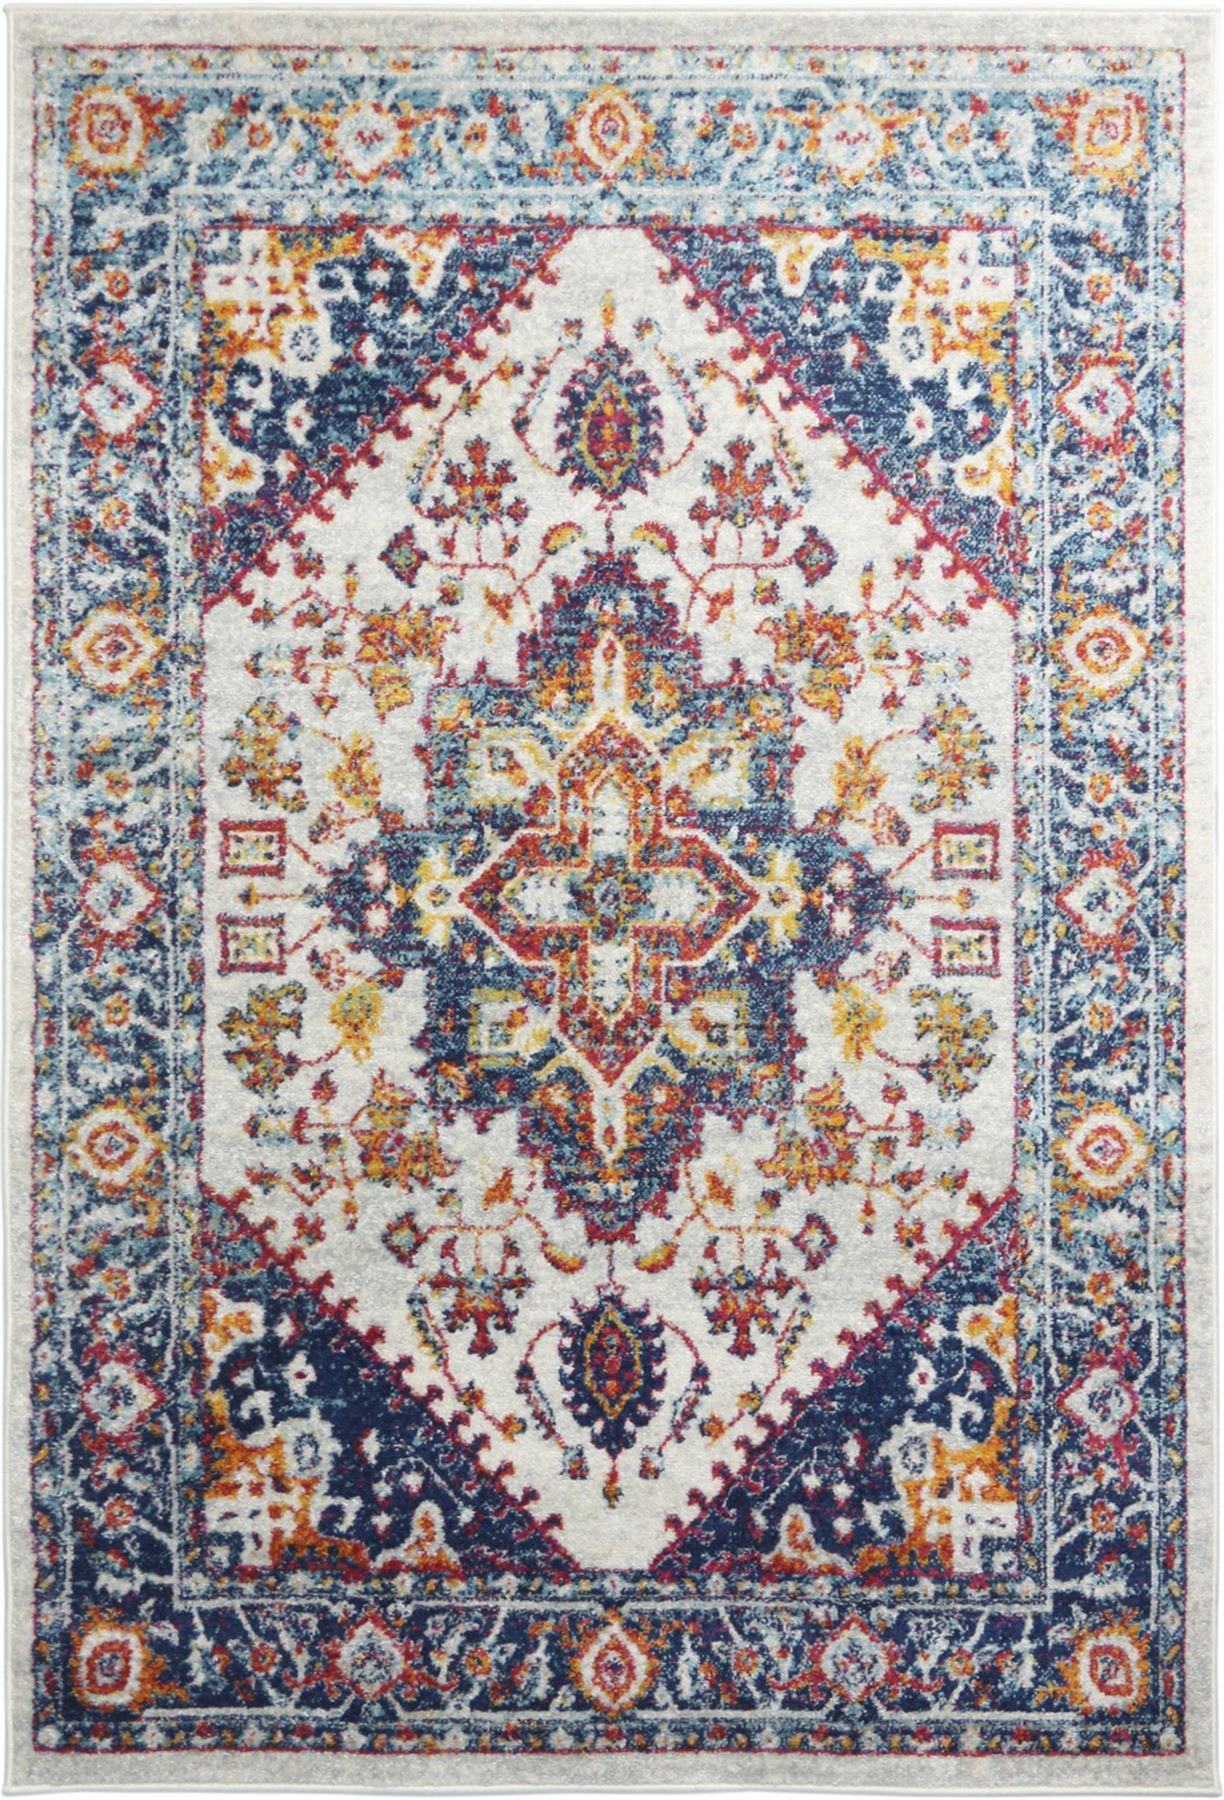 Large-Quality-Traditional-Area-Rug-Assorted-Persian-Floral-Designs-Carpet-Runner thumbnail 28